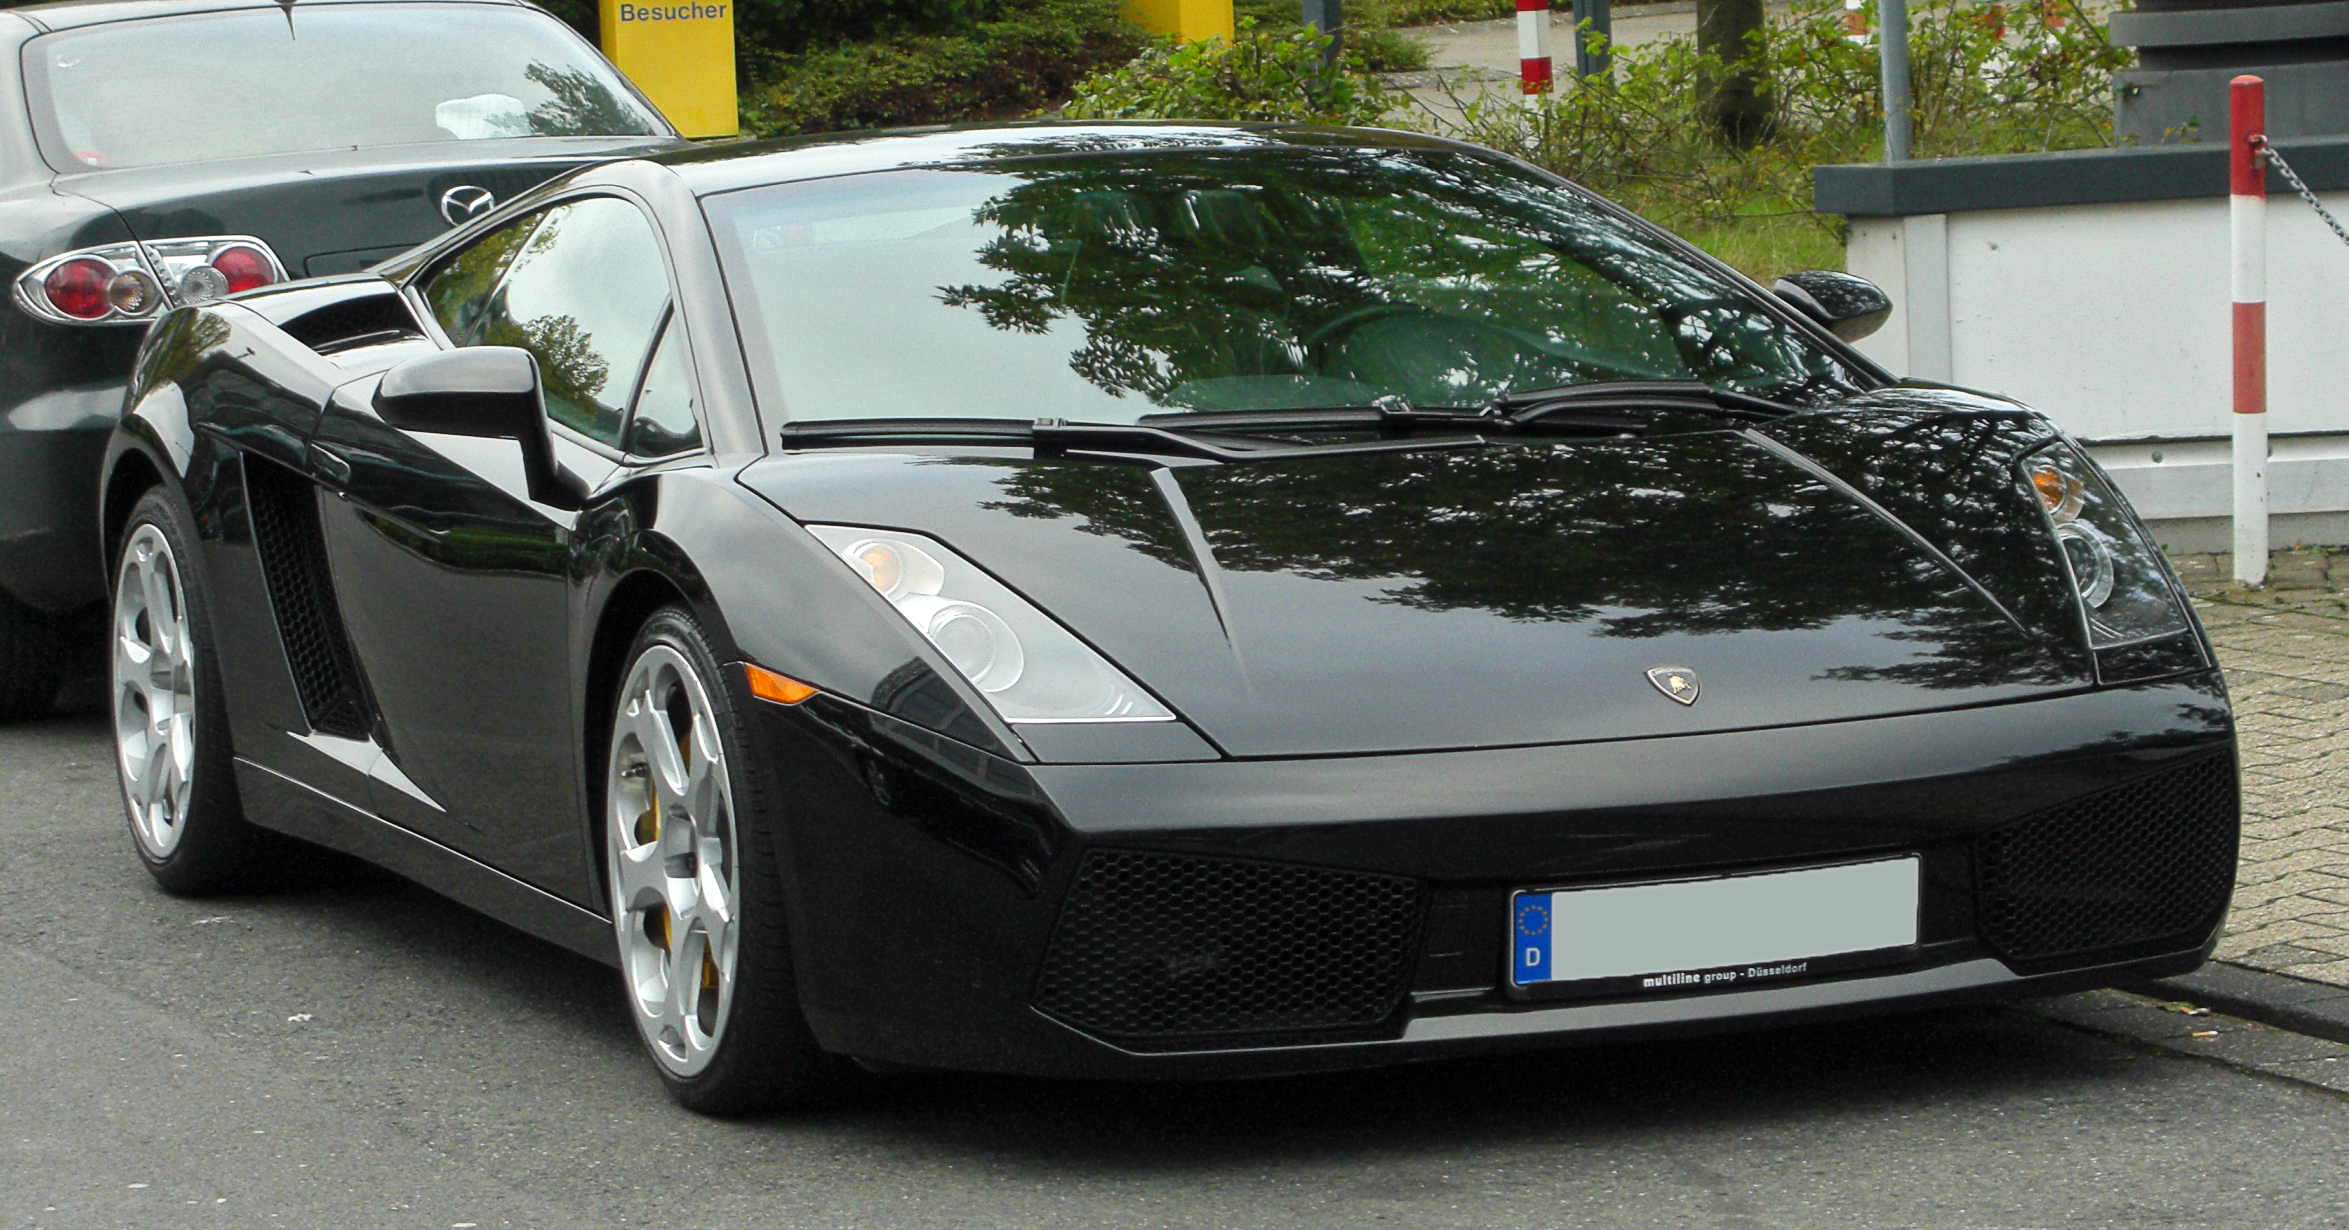 file:lamborghini gallardo coupé front 20101002 - wikimedia commons